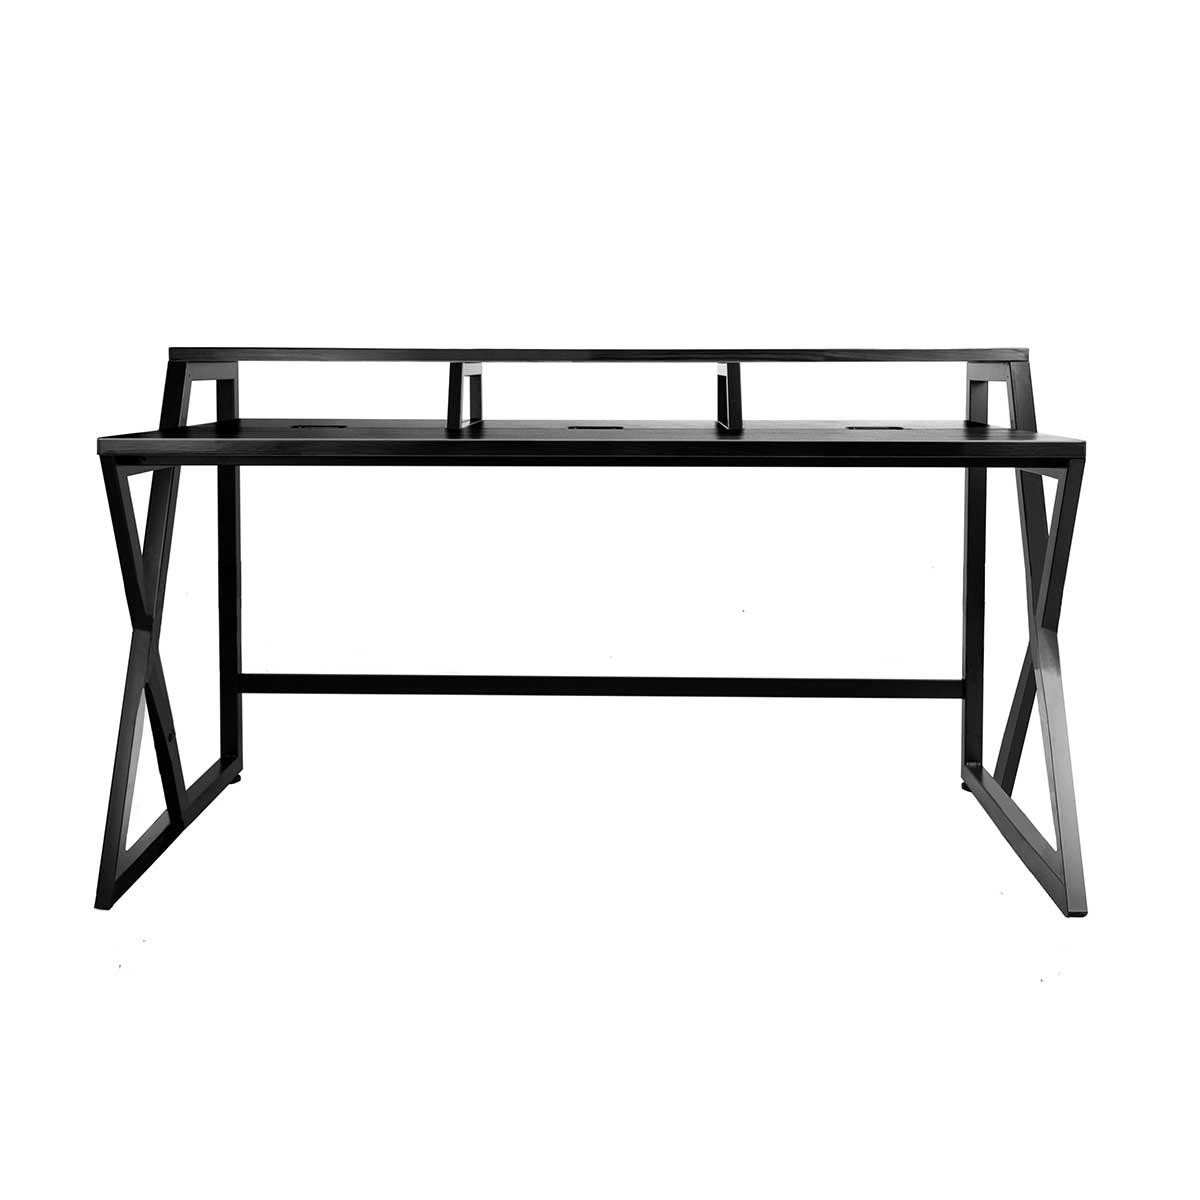 Wavebone Headquarter Studio Production Desk Black